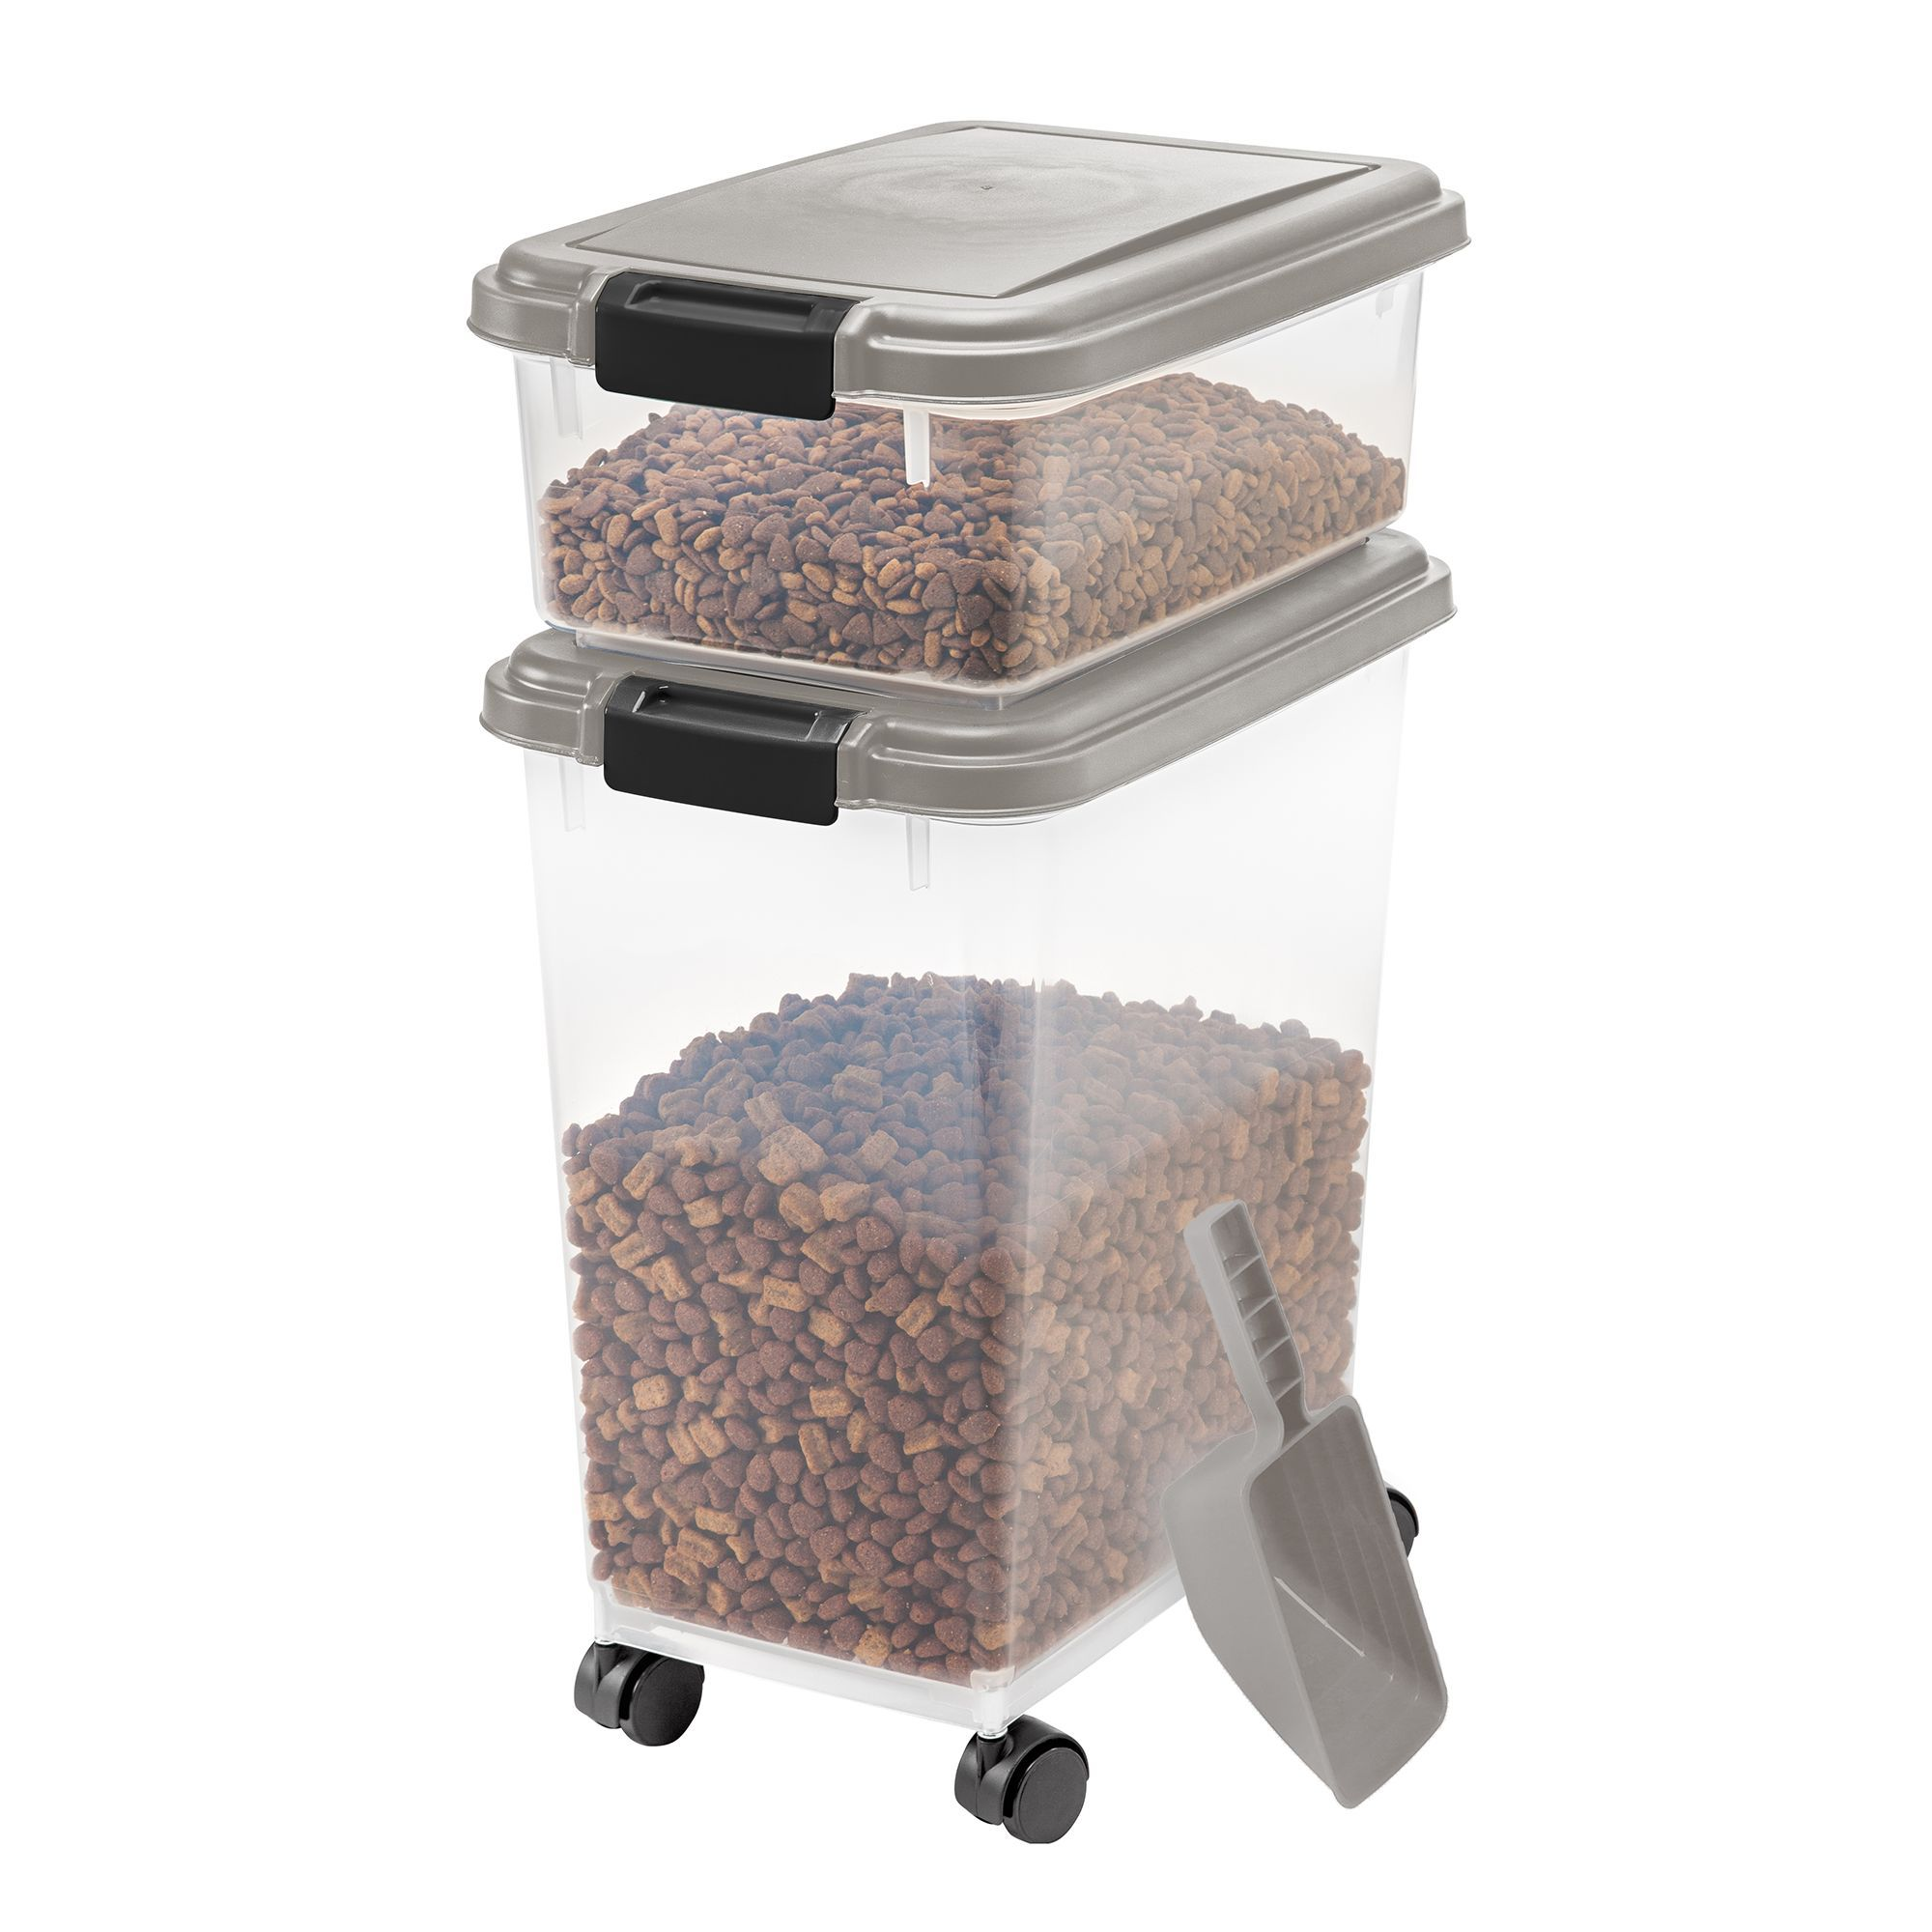 Iris Airtight Pet Food Storage Combo With Scoop In 2020 Pet Food